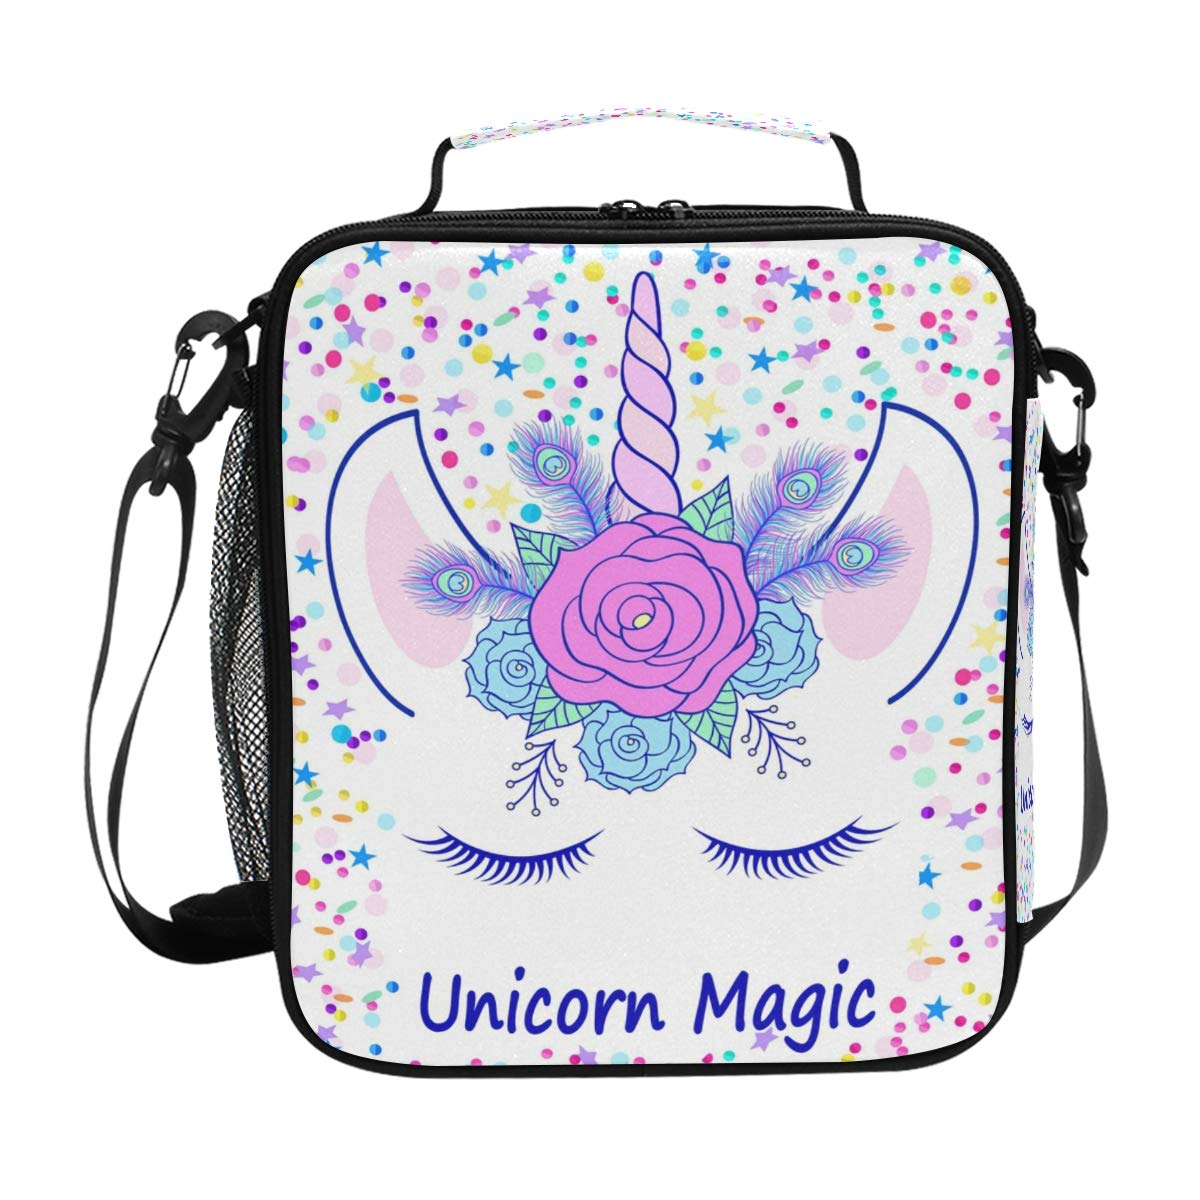 ZOEO Girls Unicorn Lunch Box Head Cream Magic Pink Floral Tiara Prep Kids Cooler Insulated Lunch Bag Tote Freezable Shoulder Strap Waterproof Picnic Meal for School Office